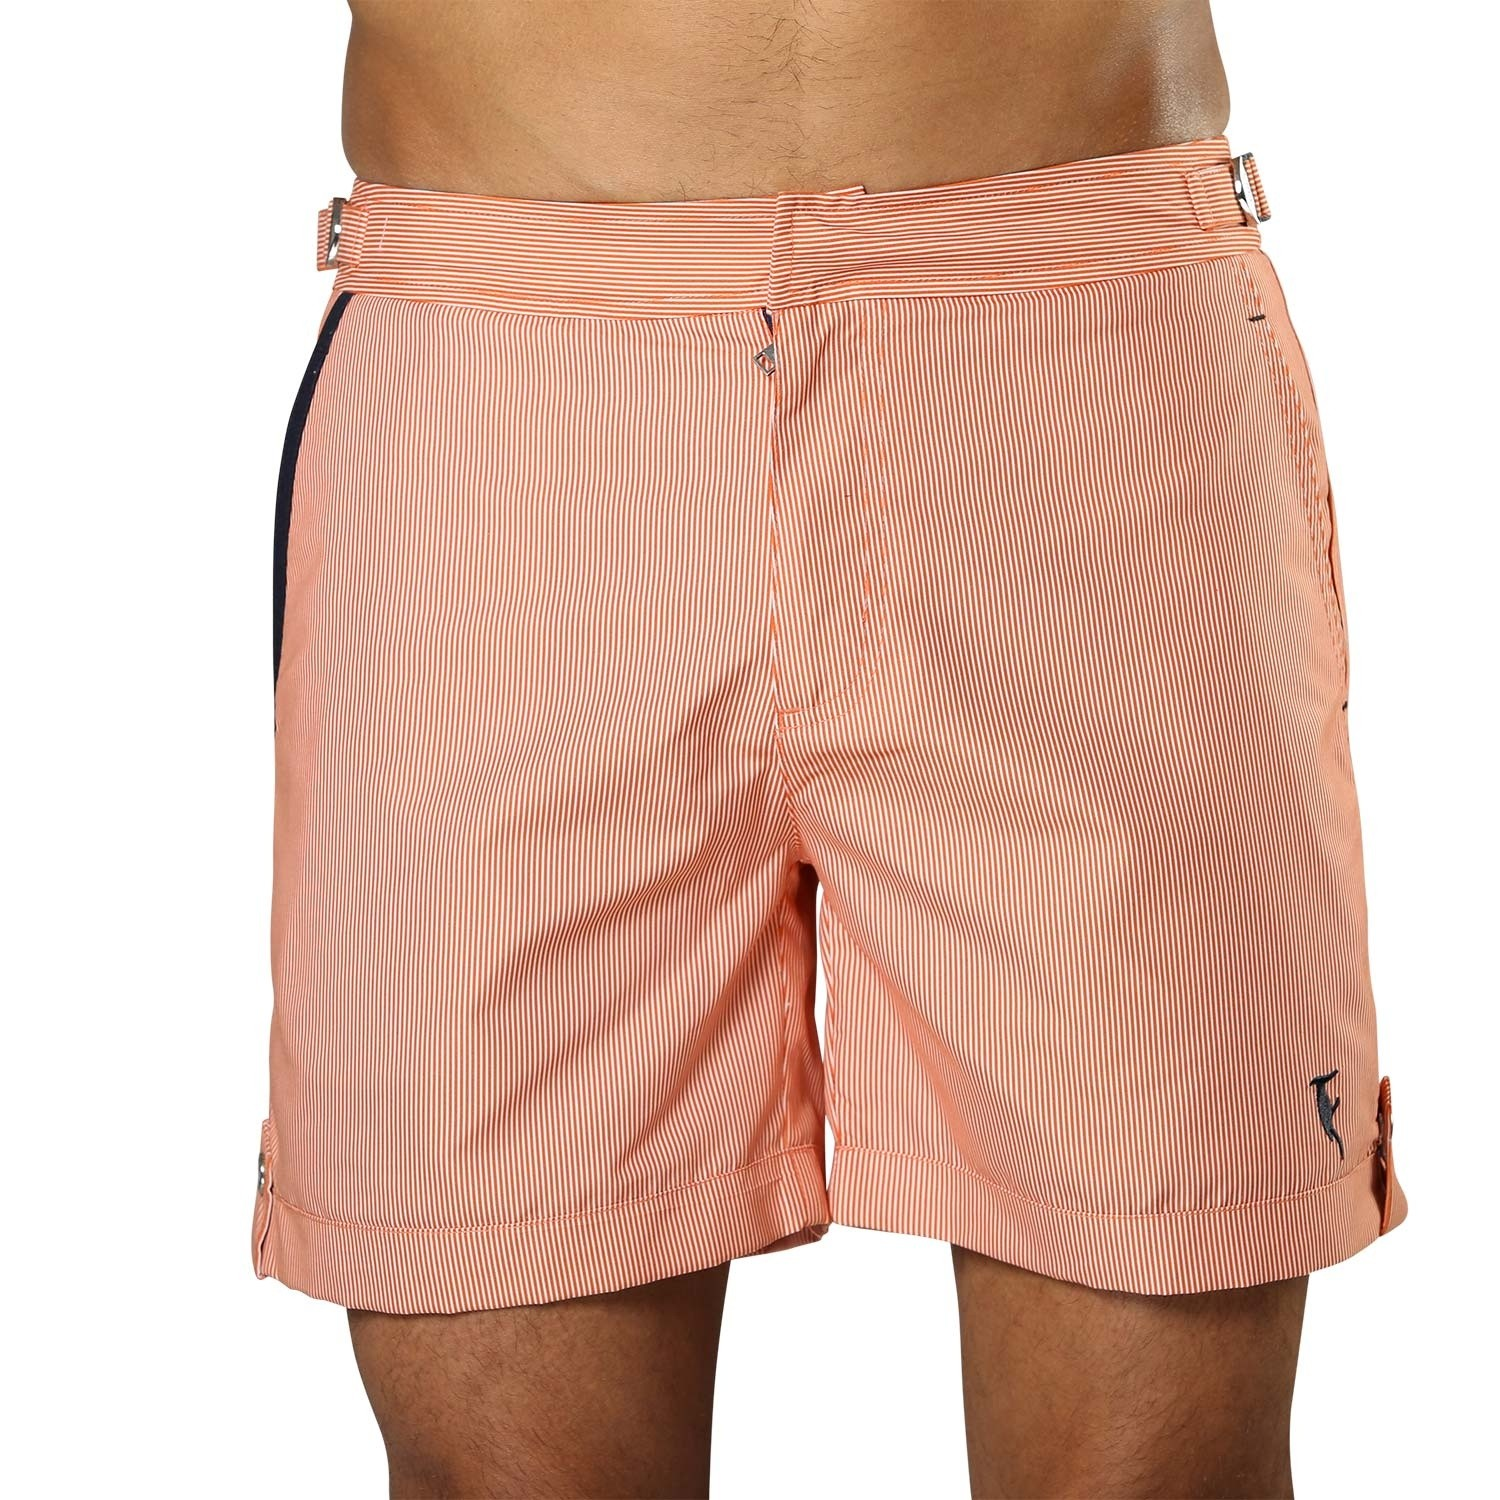 Zdjęcie Swim Short Tampa Stripes Tangerine Orange Sanwin Beachwear